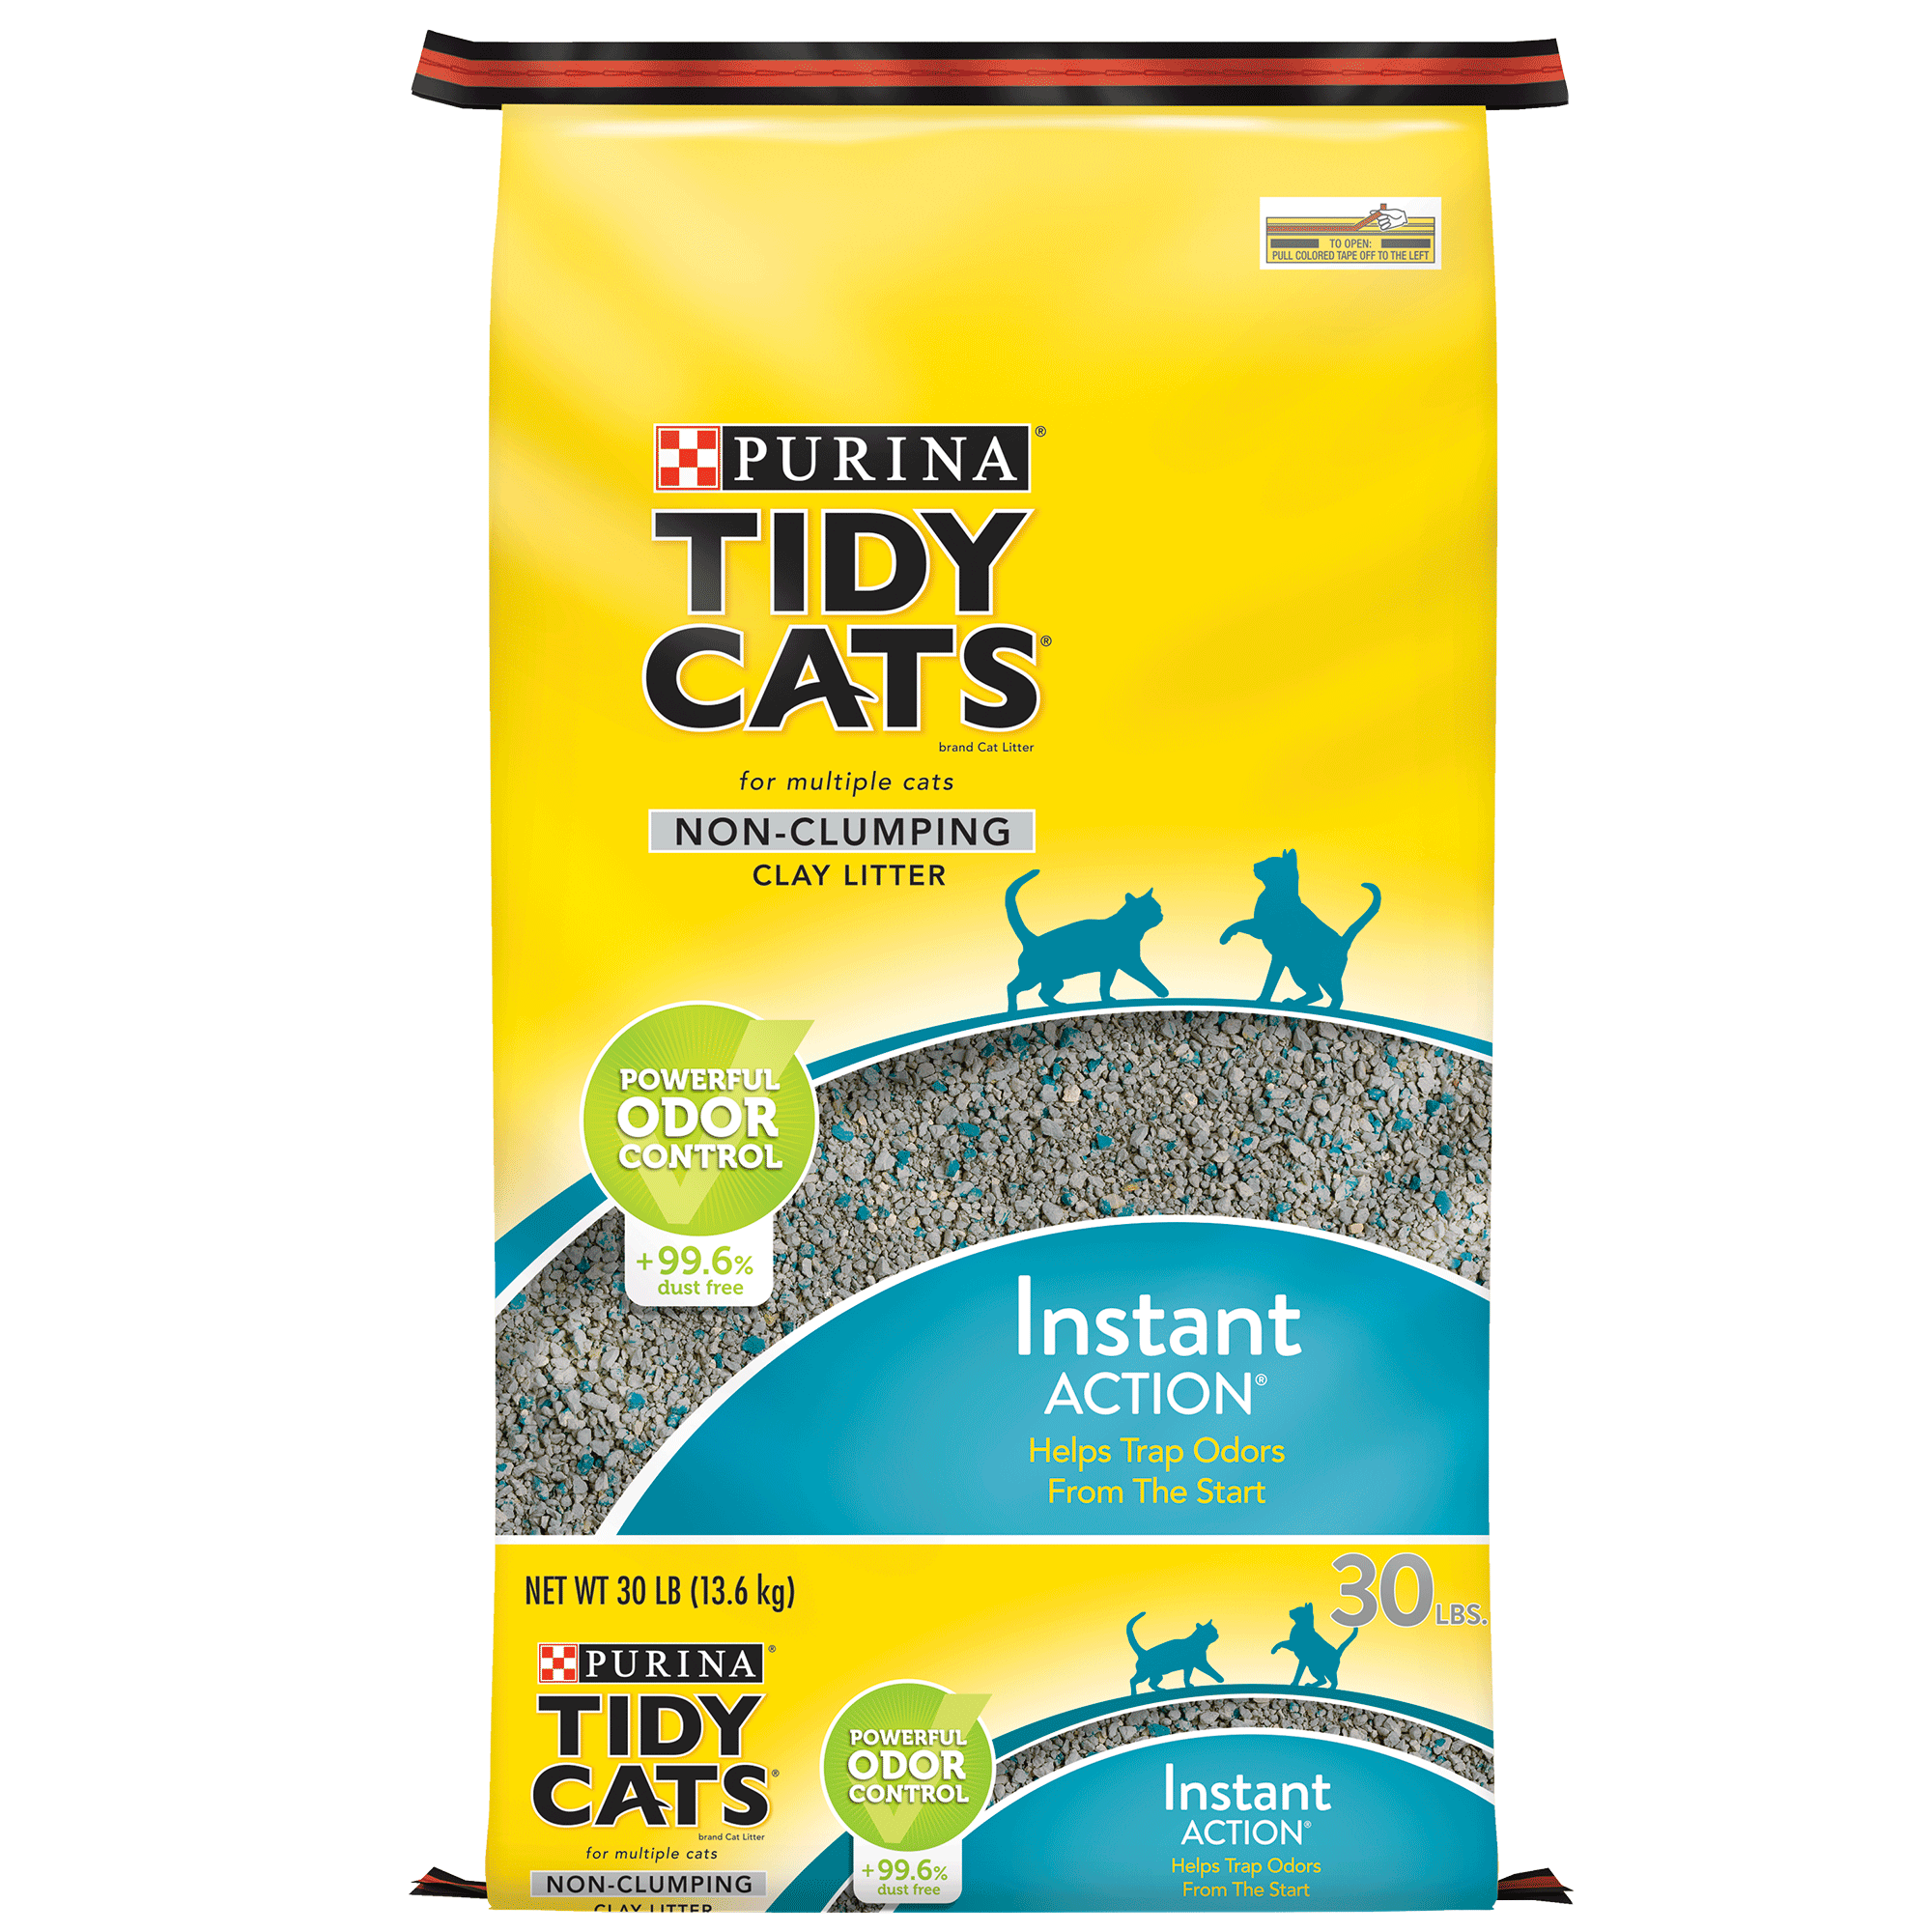 Purina Tidy Cats Instant Action for Multiple Cats Non-Clumping Cat Litter - 30 lb. Bag